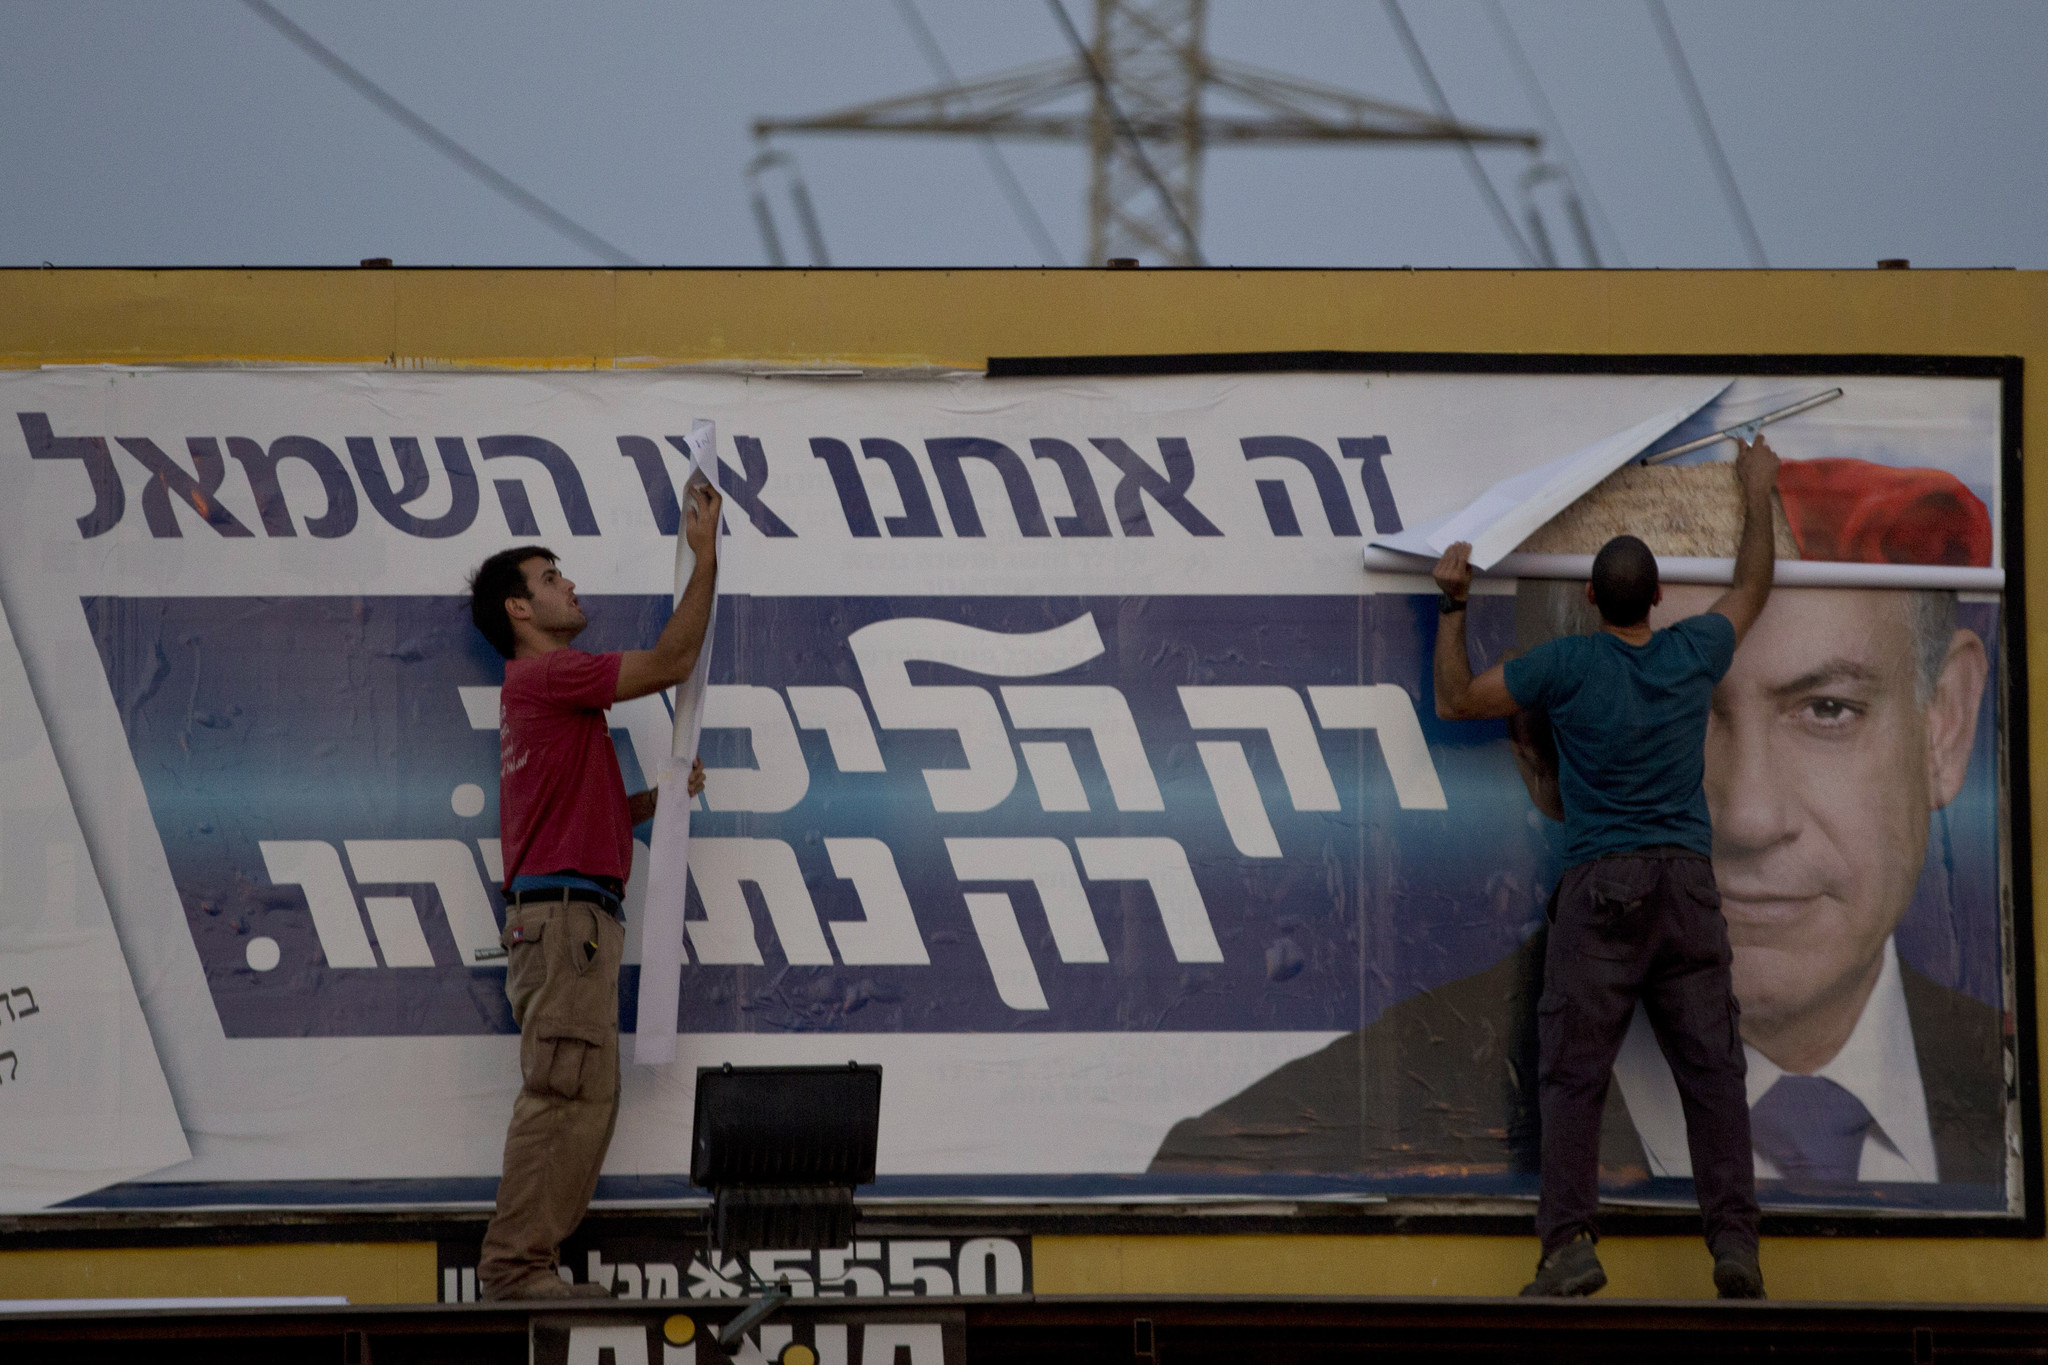 With last votes counted in Israel, parties jockey for position